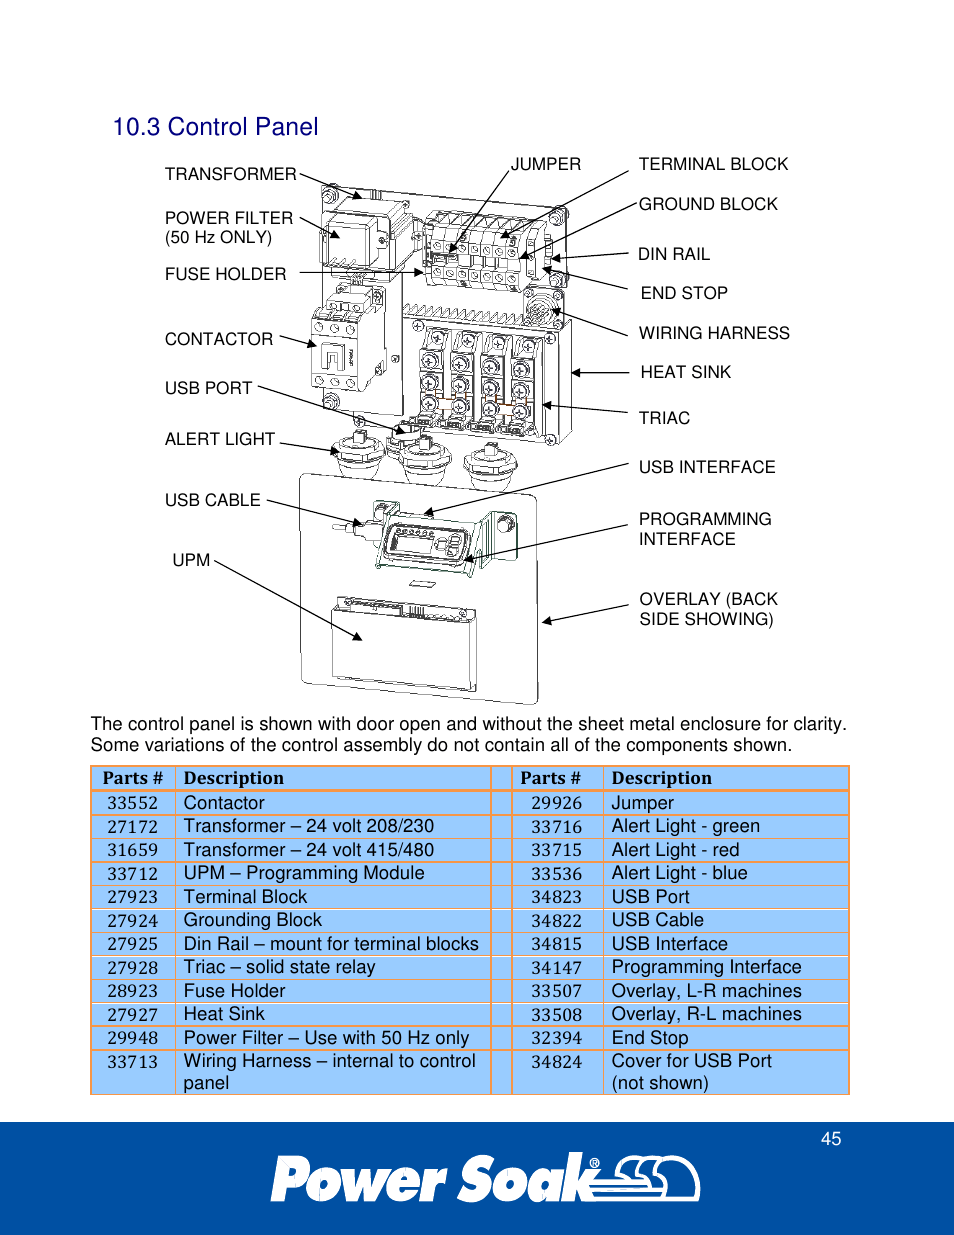 hight resolution of 3 control panel power soak 34774 ps 225 service manual user manual page 51 60